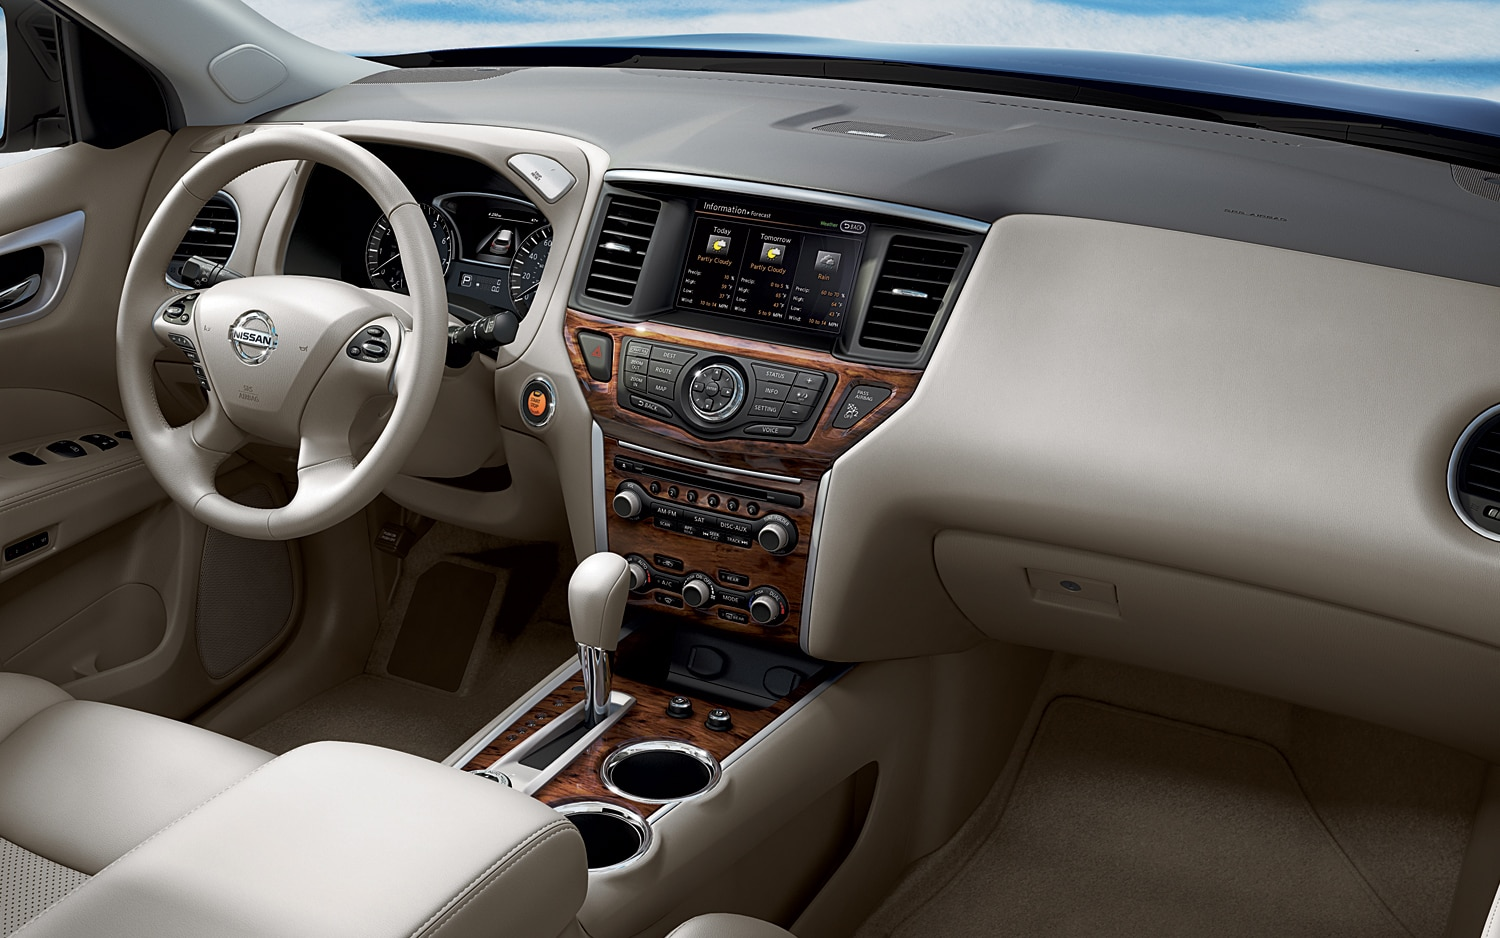 2013 nissan pathfinder interior revealed show more vanachro Image collections